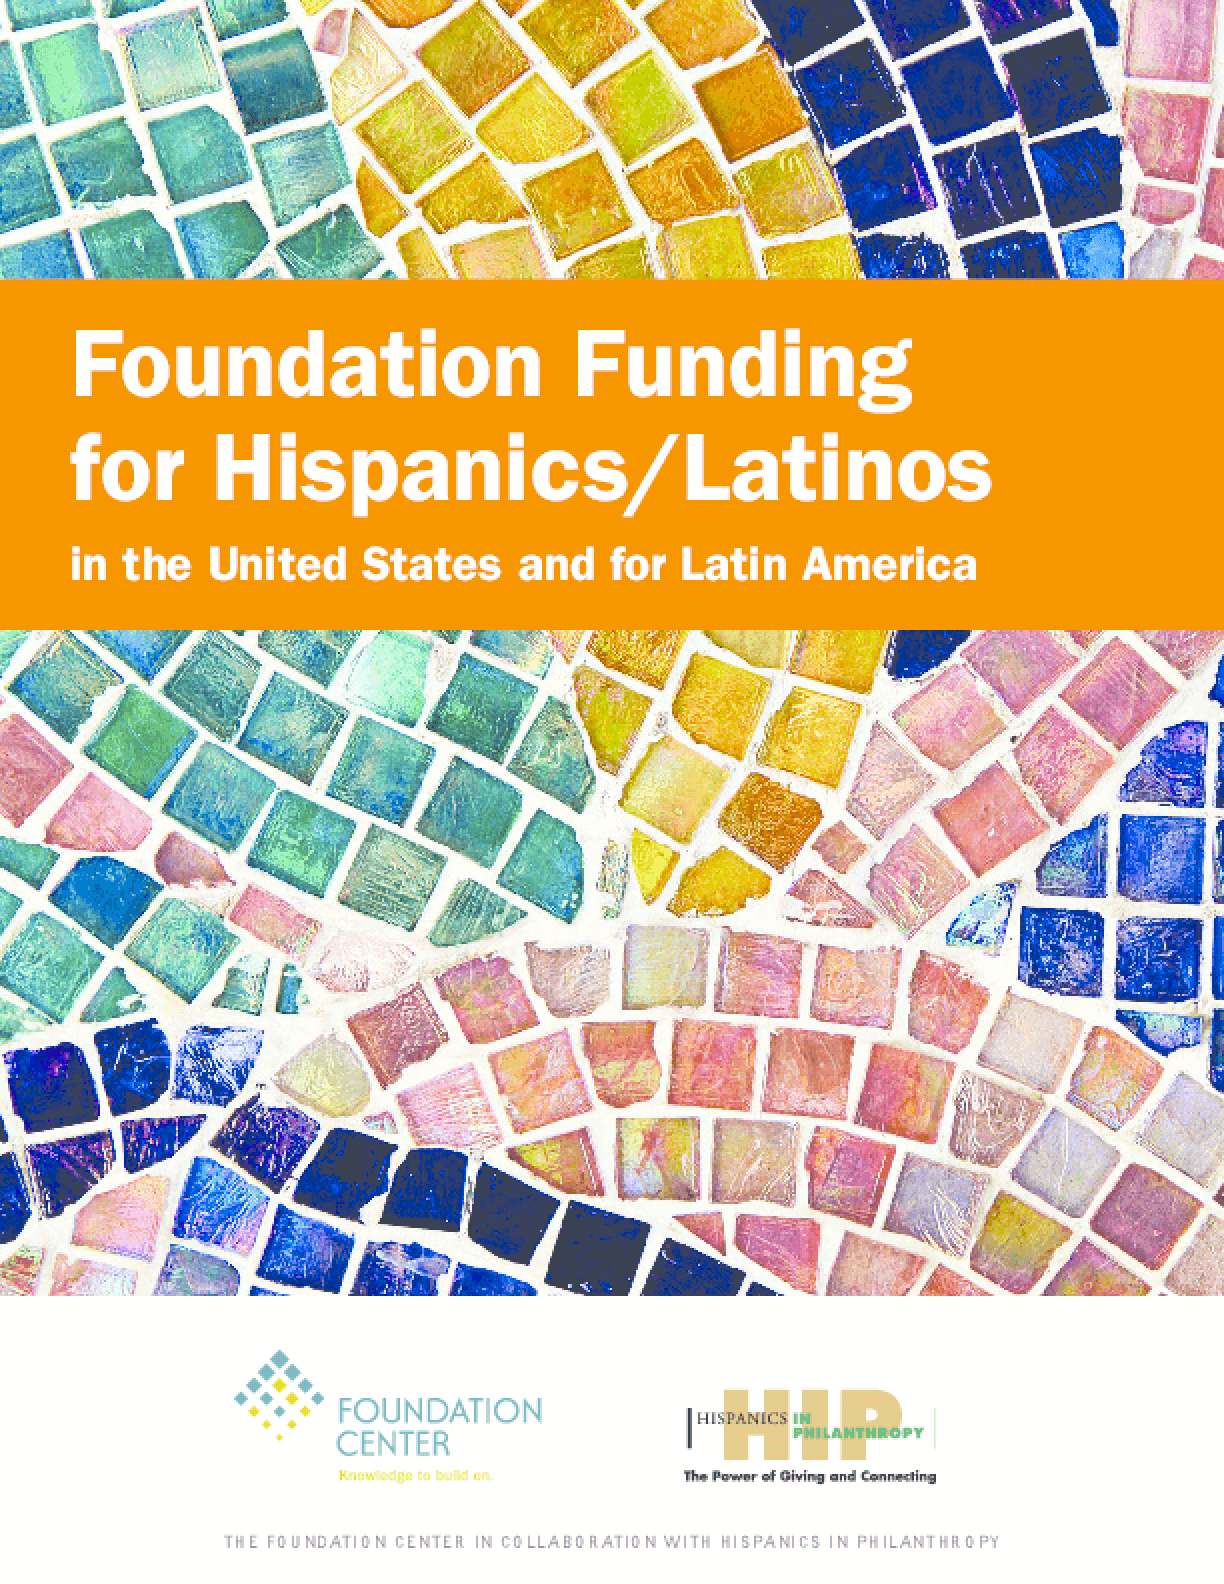 Foundation Funding for Hispanics/Latinos in the United States and for Latin America